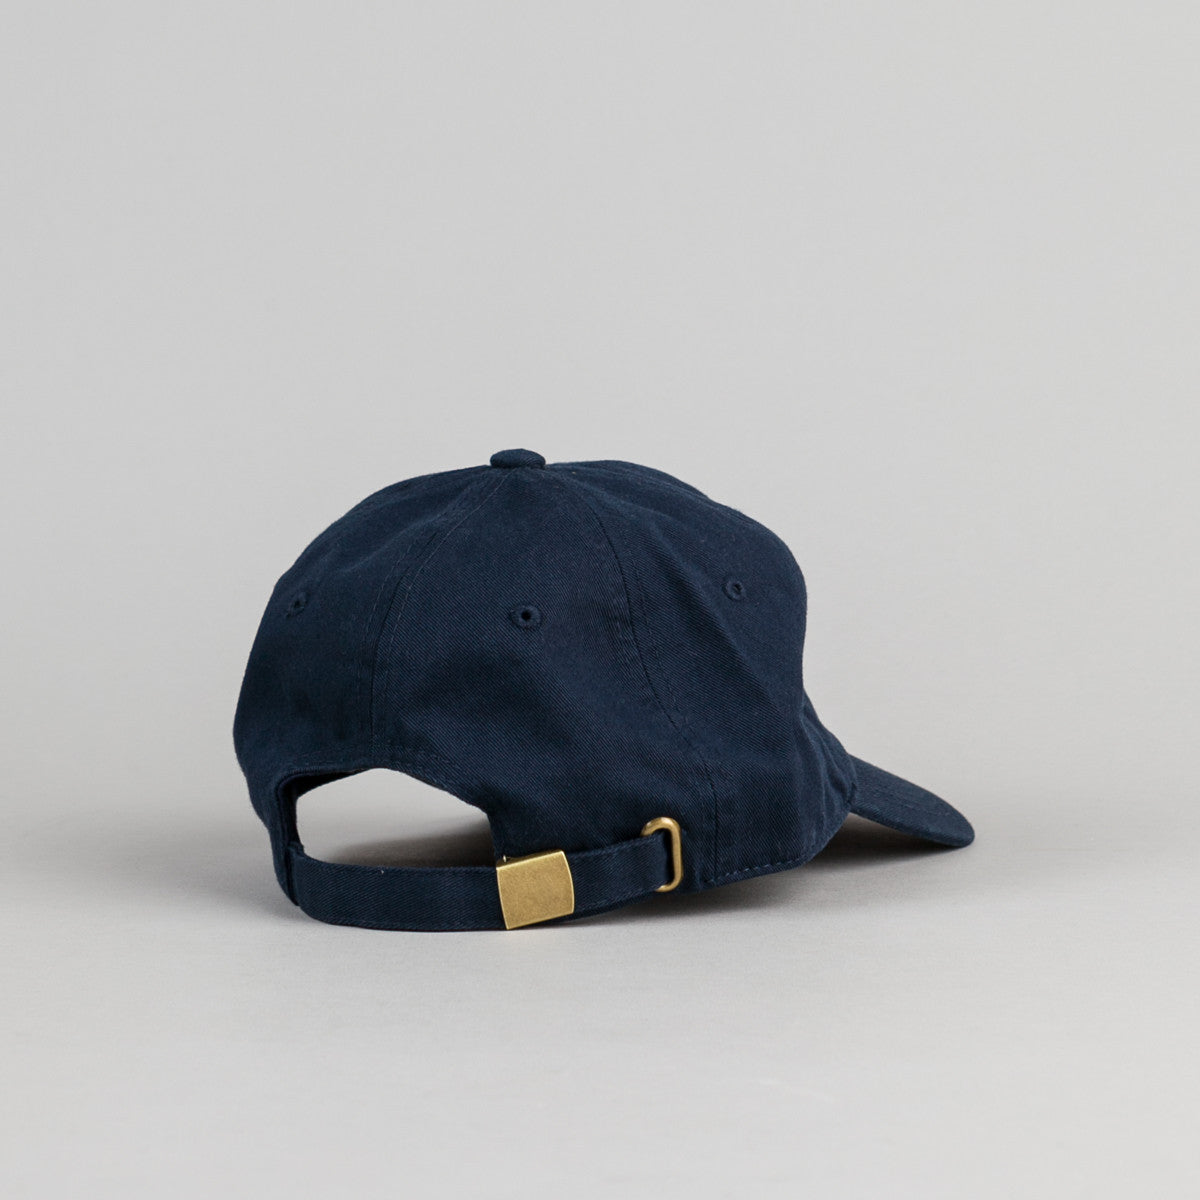 Canal New York Adult Headwear 6 Panel Cap - Navy